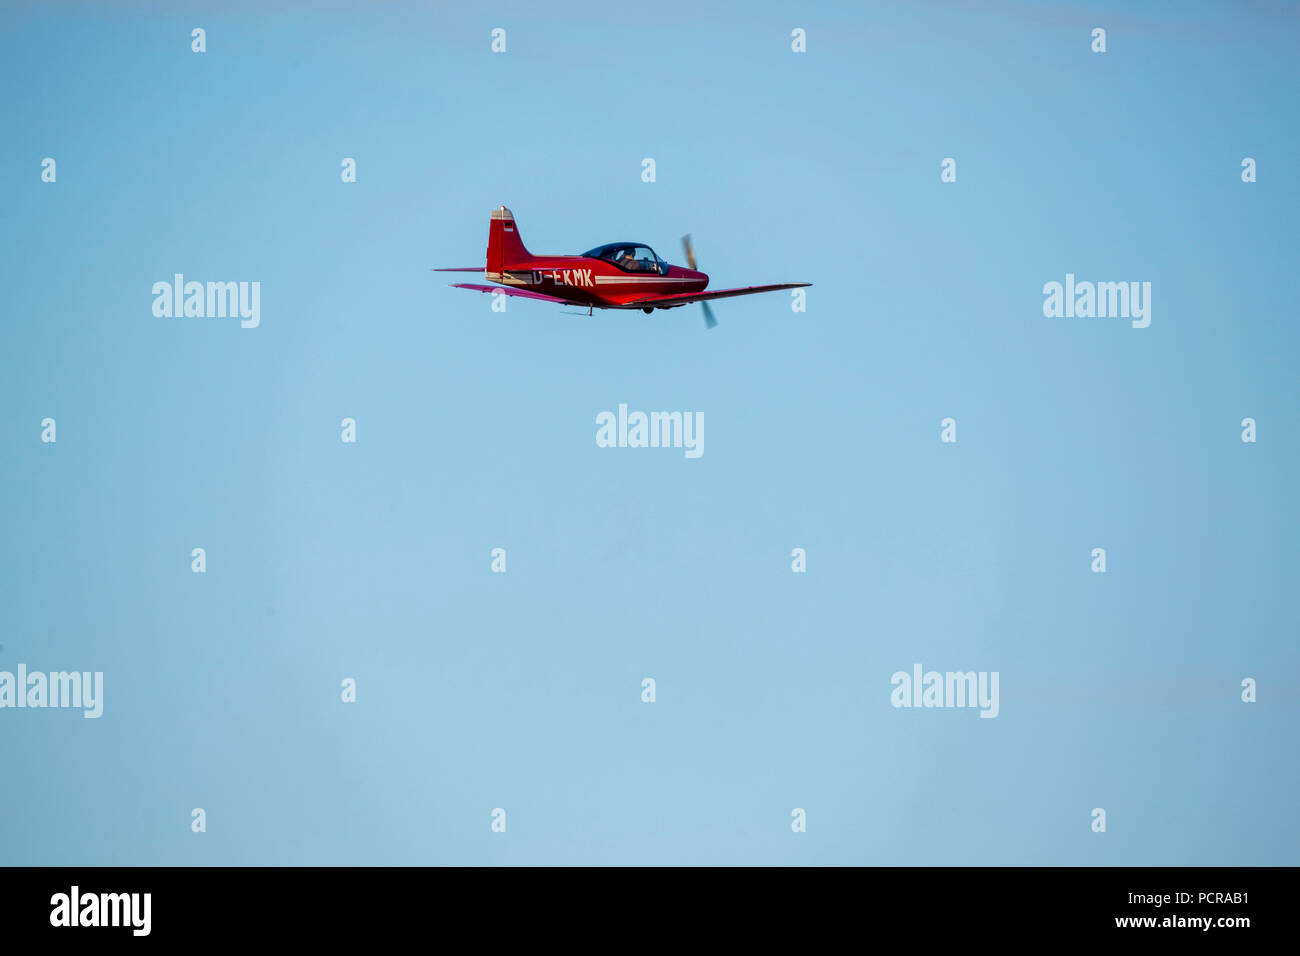 red Falco plane, wood construction, D-EKMK, General Aviation, Echo-Class passenger plane, Sport aircraft over Hamm, Hamm, Ruhr area, North Rhine-Westphalia, Germany Stock Photo